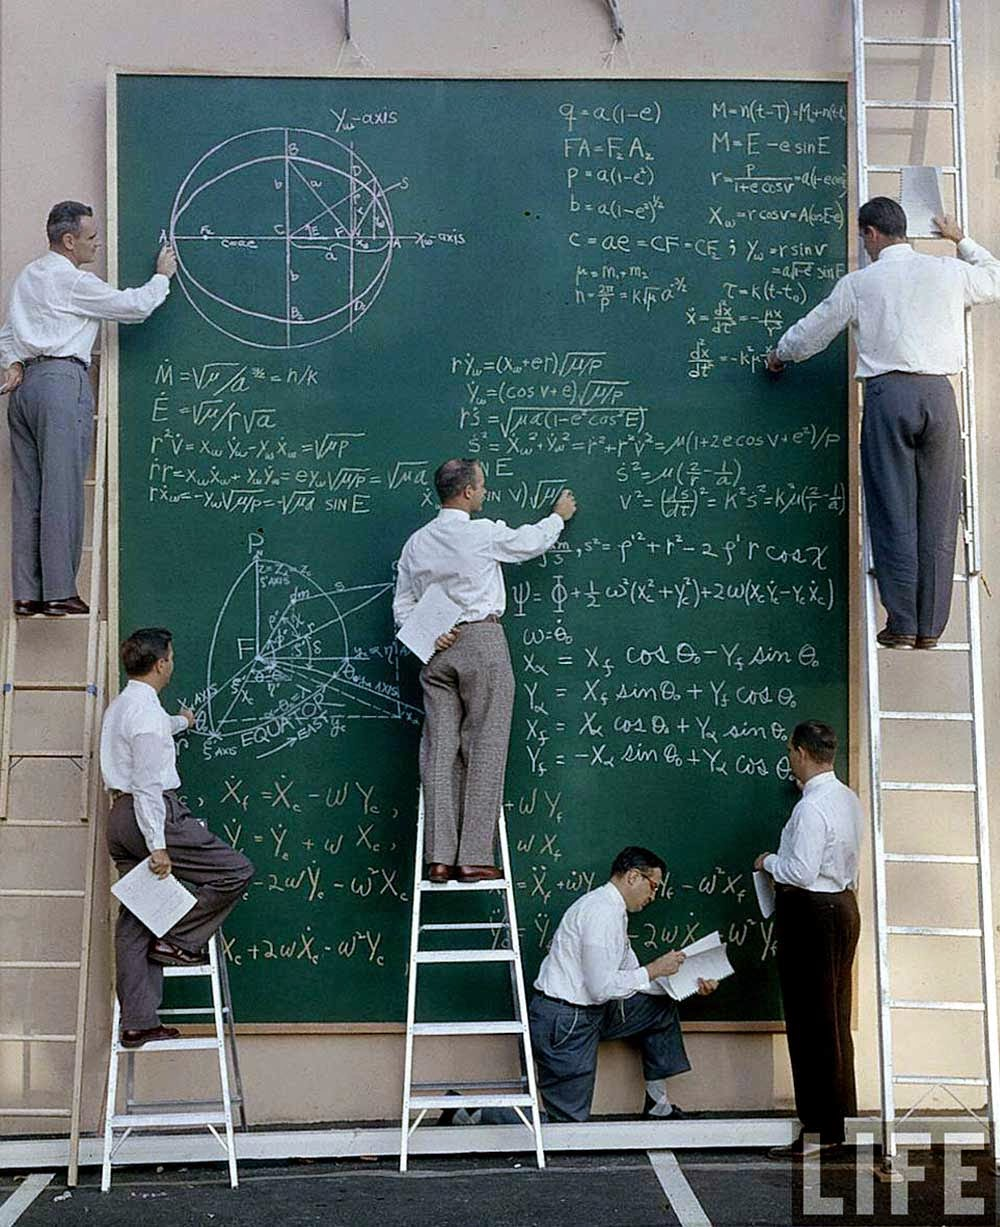 NASA scientists with their board of calculations, 1961.